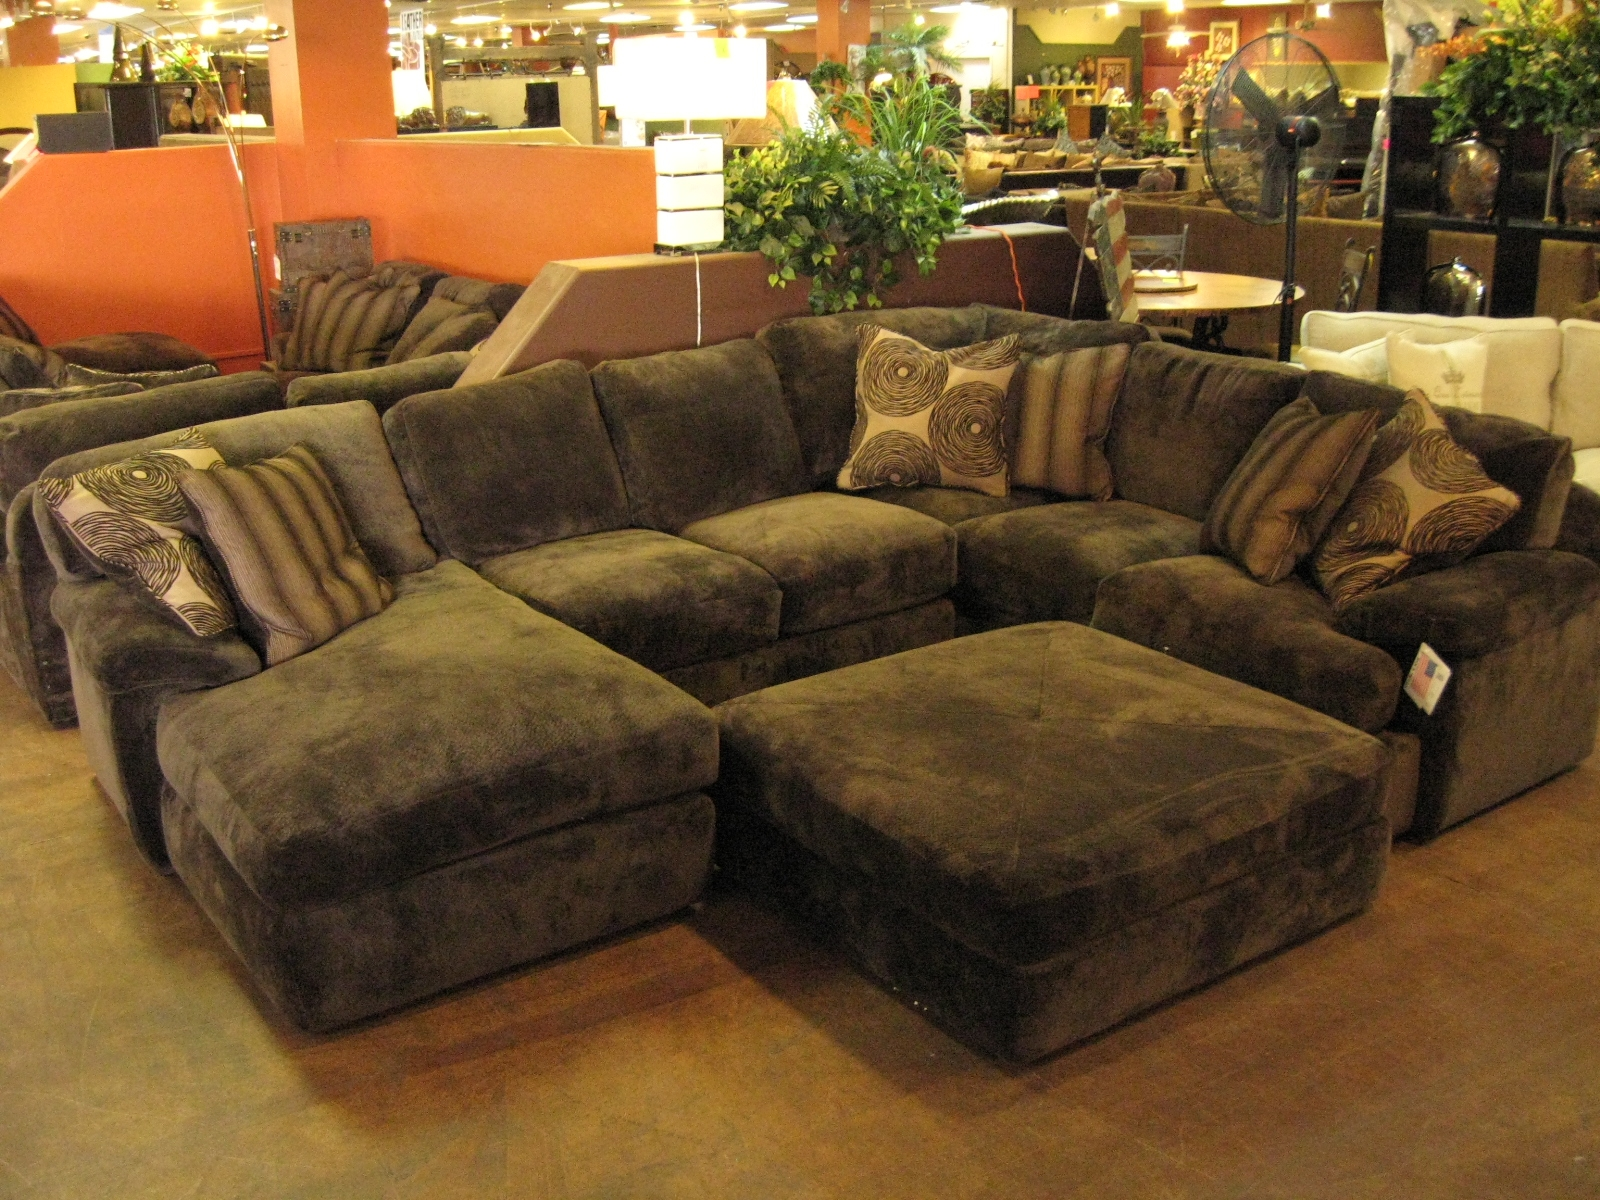 Robert Michaels Furniture Direct Furnishings Outlet Within Champion Sectional Sofa (#10 of 12)